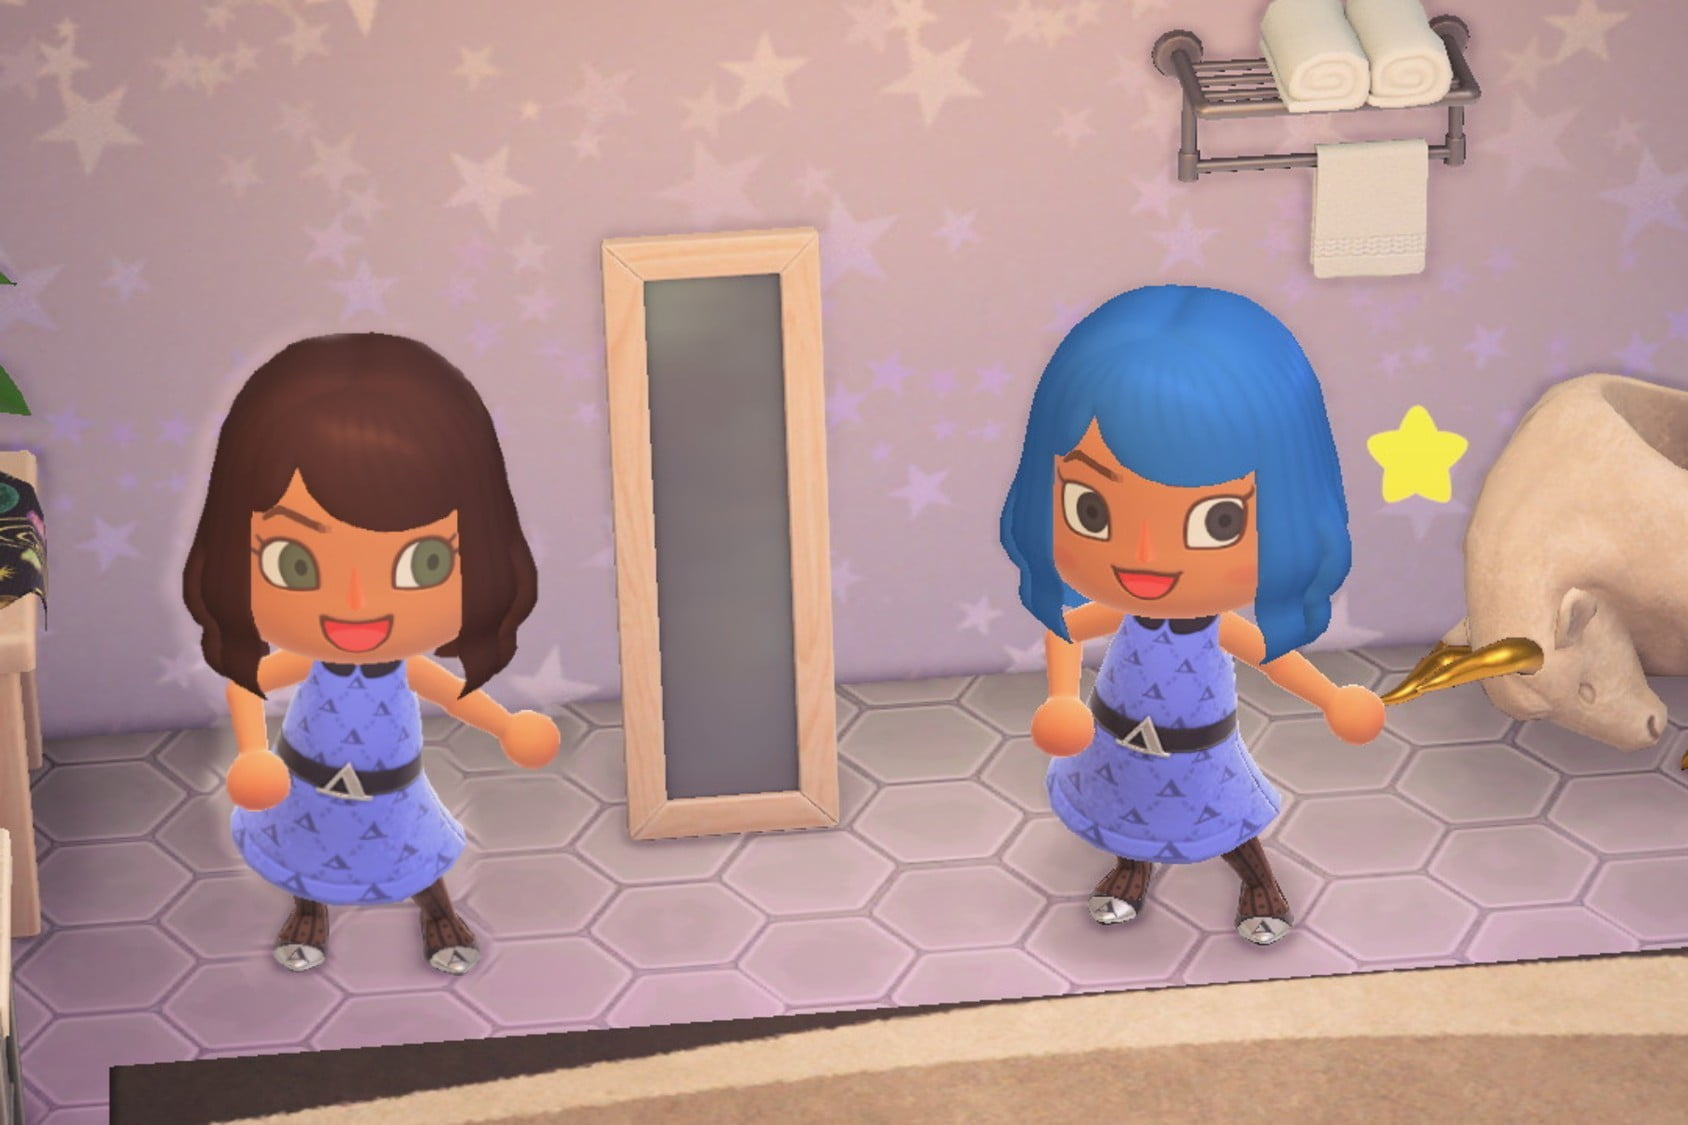 How To Change Your Appearance In Animal Crossing New Horizons